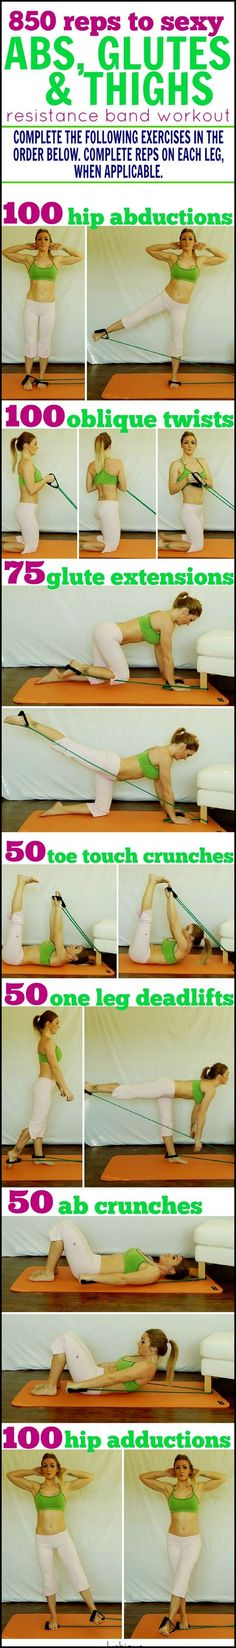 Best Ab Exercises for Women. Get crop top worthy abs with these effective abdominal moves. #weightloss #loseweight #howtoloseweight #absworkout #abexercises #coreexercises #abs #cardio #circuitworkout #fitness #health